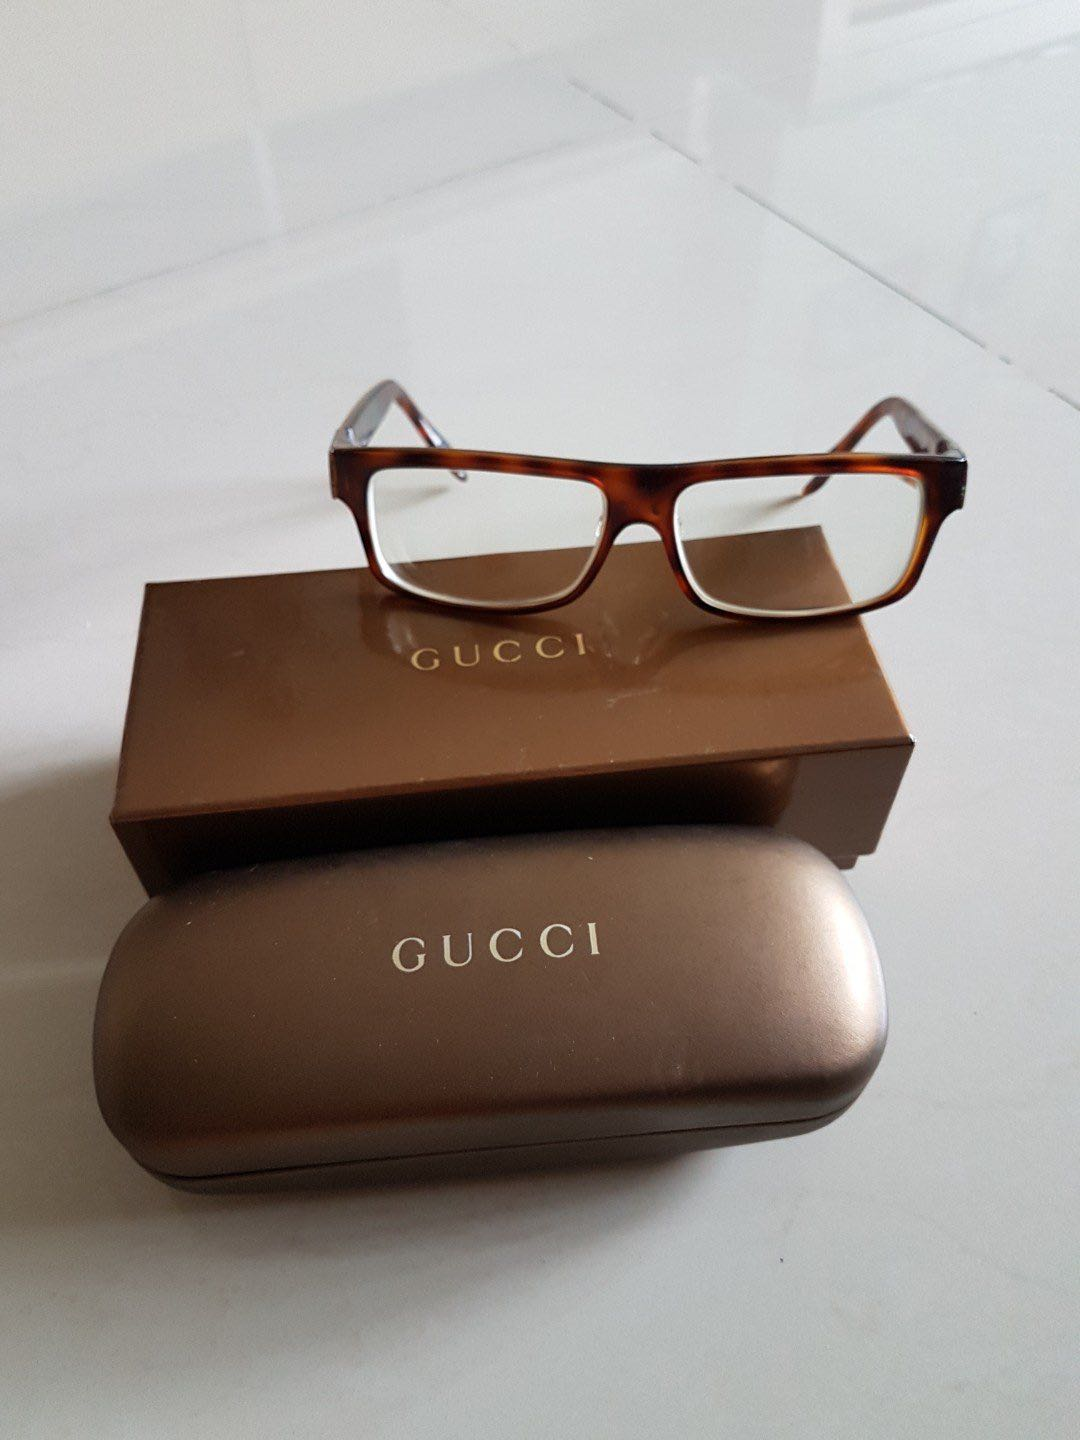 2bec4ed8a01 Gucci Eyewear (Made In Italy)